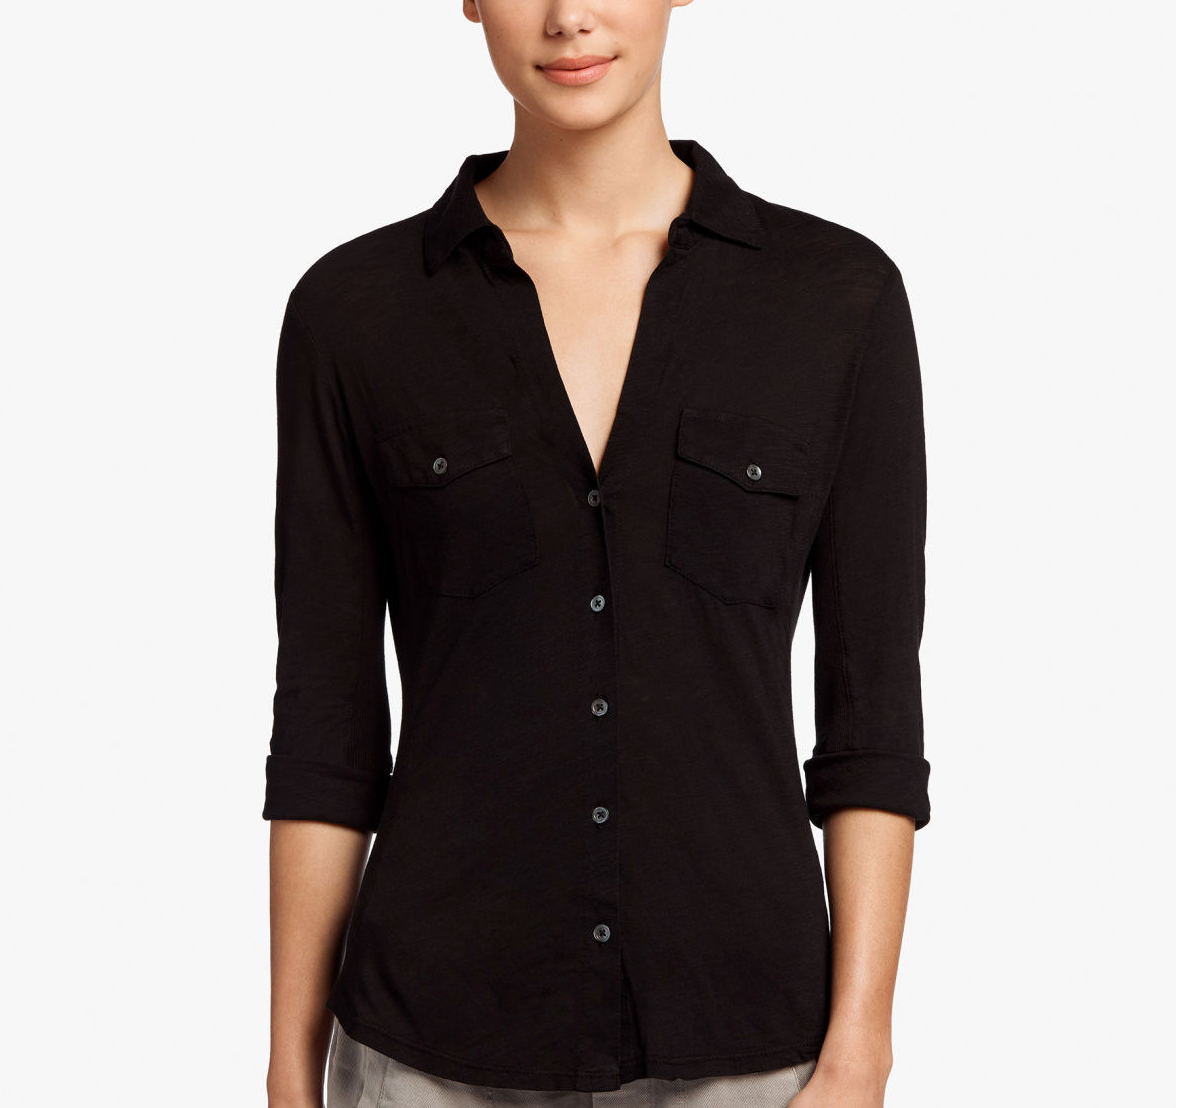 James Perse Contrast Panel Shirt Black